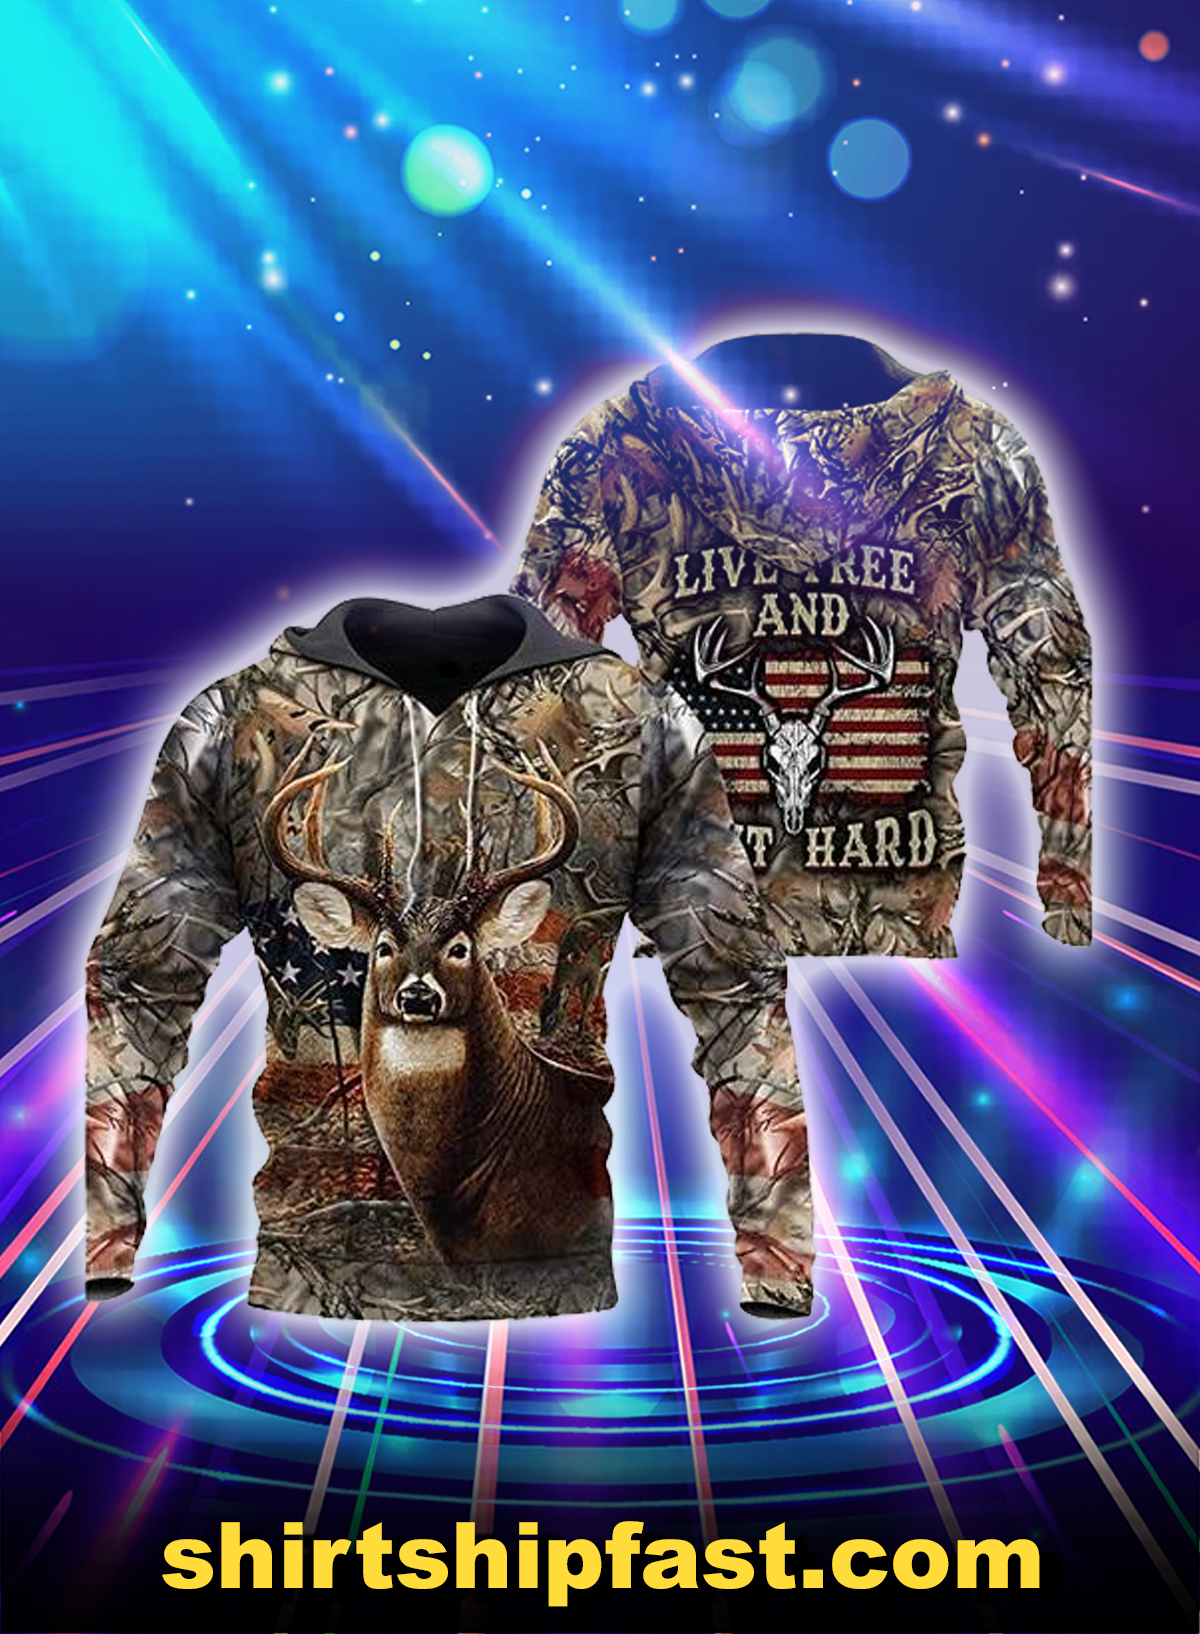 Deer hunting american flag live free and hunt hard 3d hoodie - Picture 1